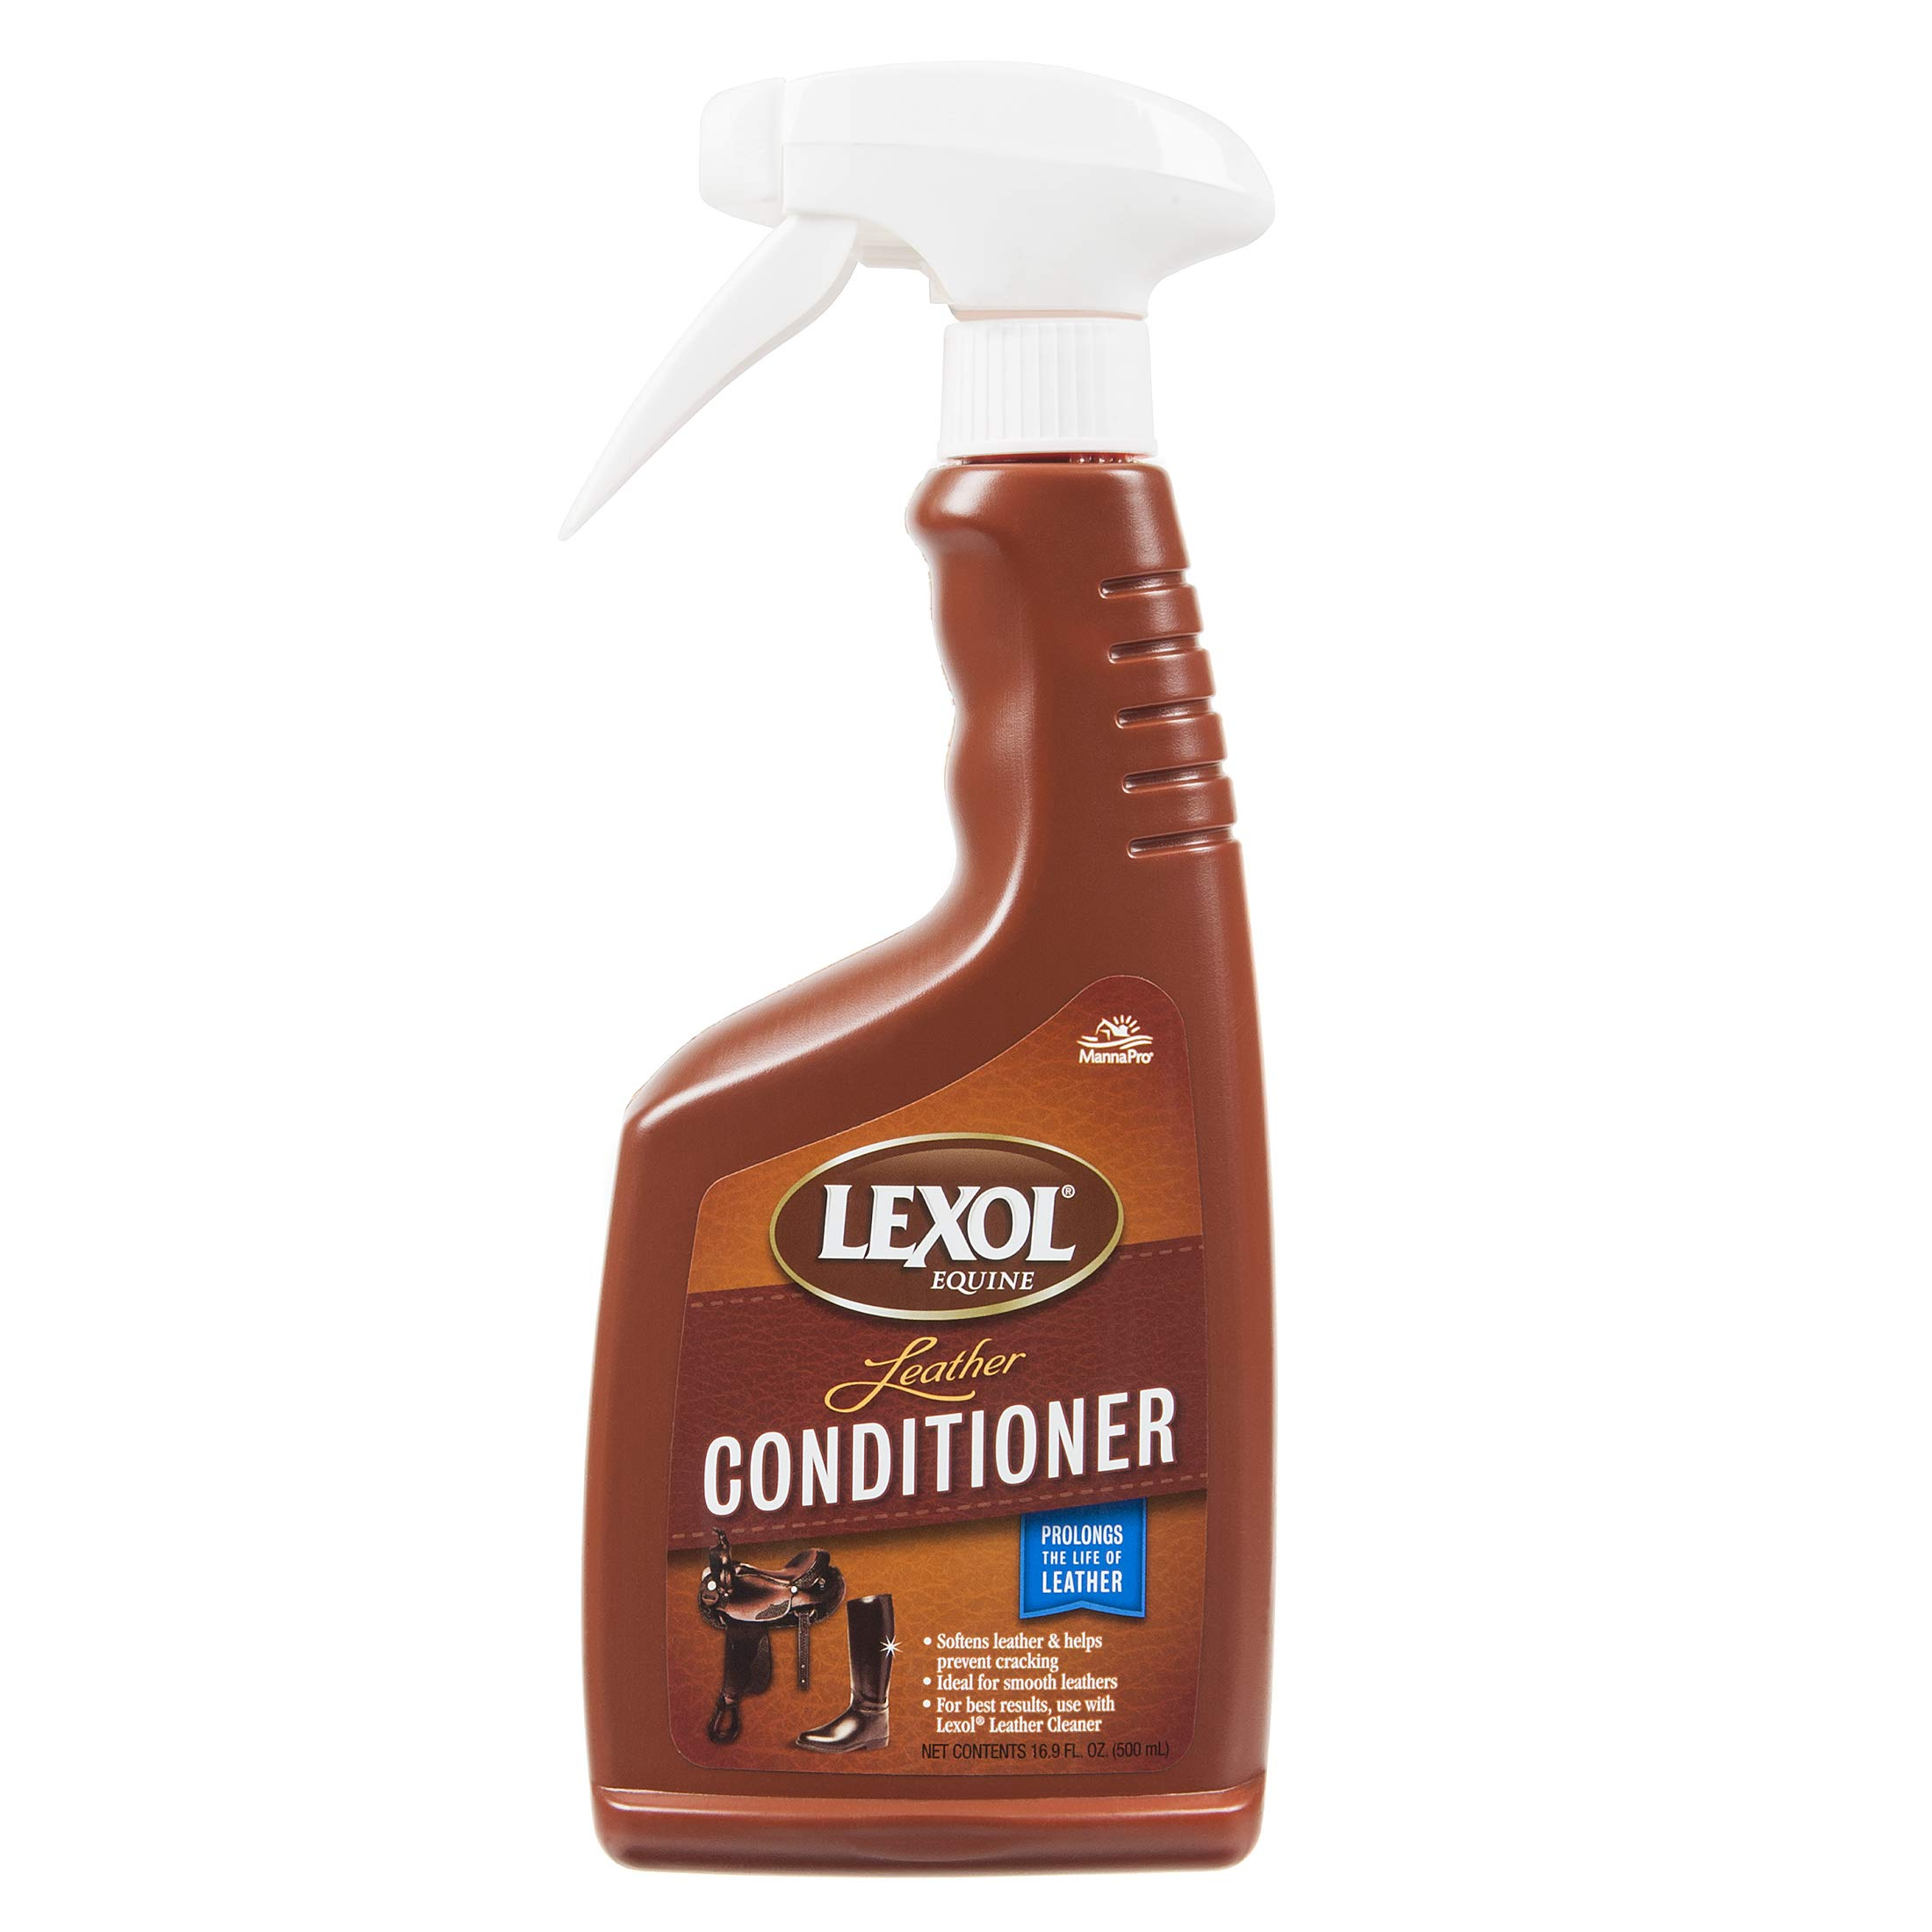 Manna Pro 441805 Lexol Leather Conditioner Supplies, 16.9 Oz, 6 by Manna Pro